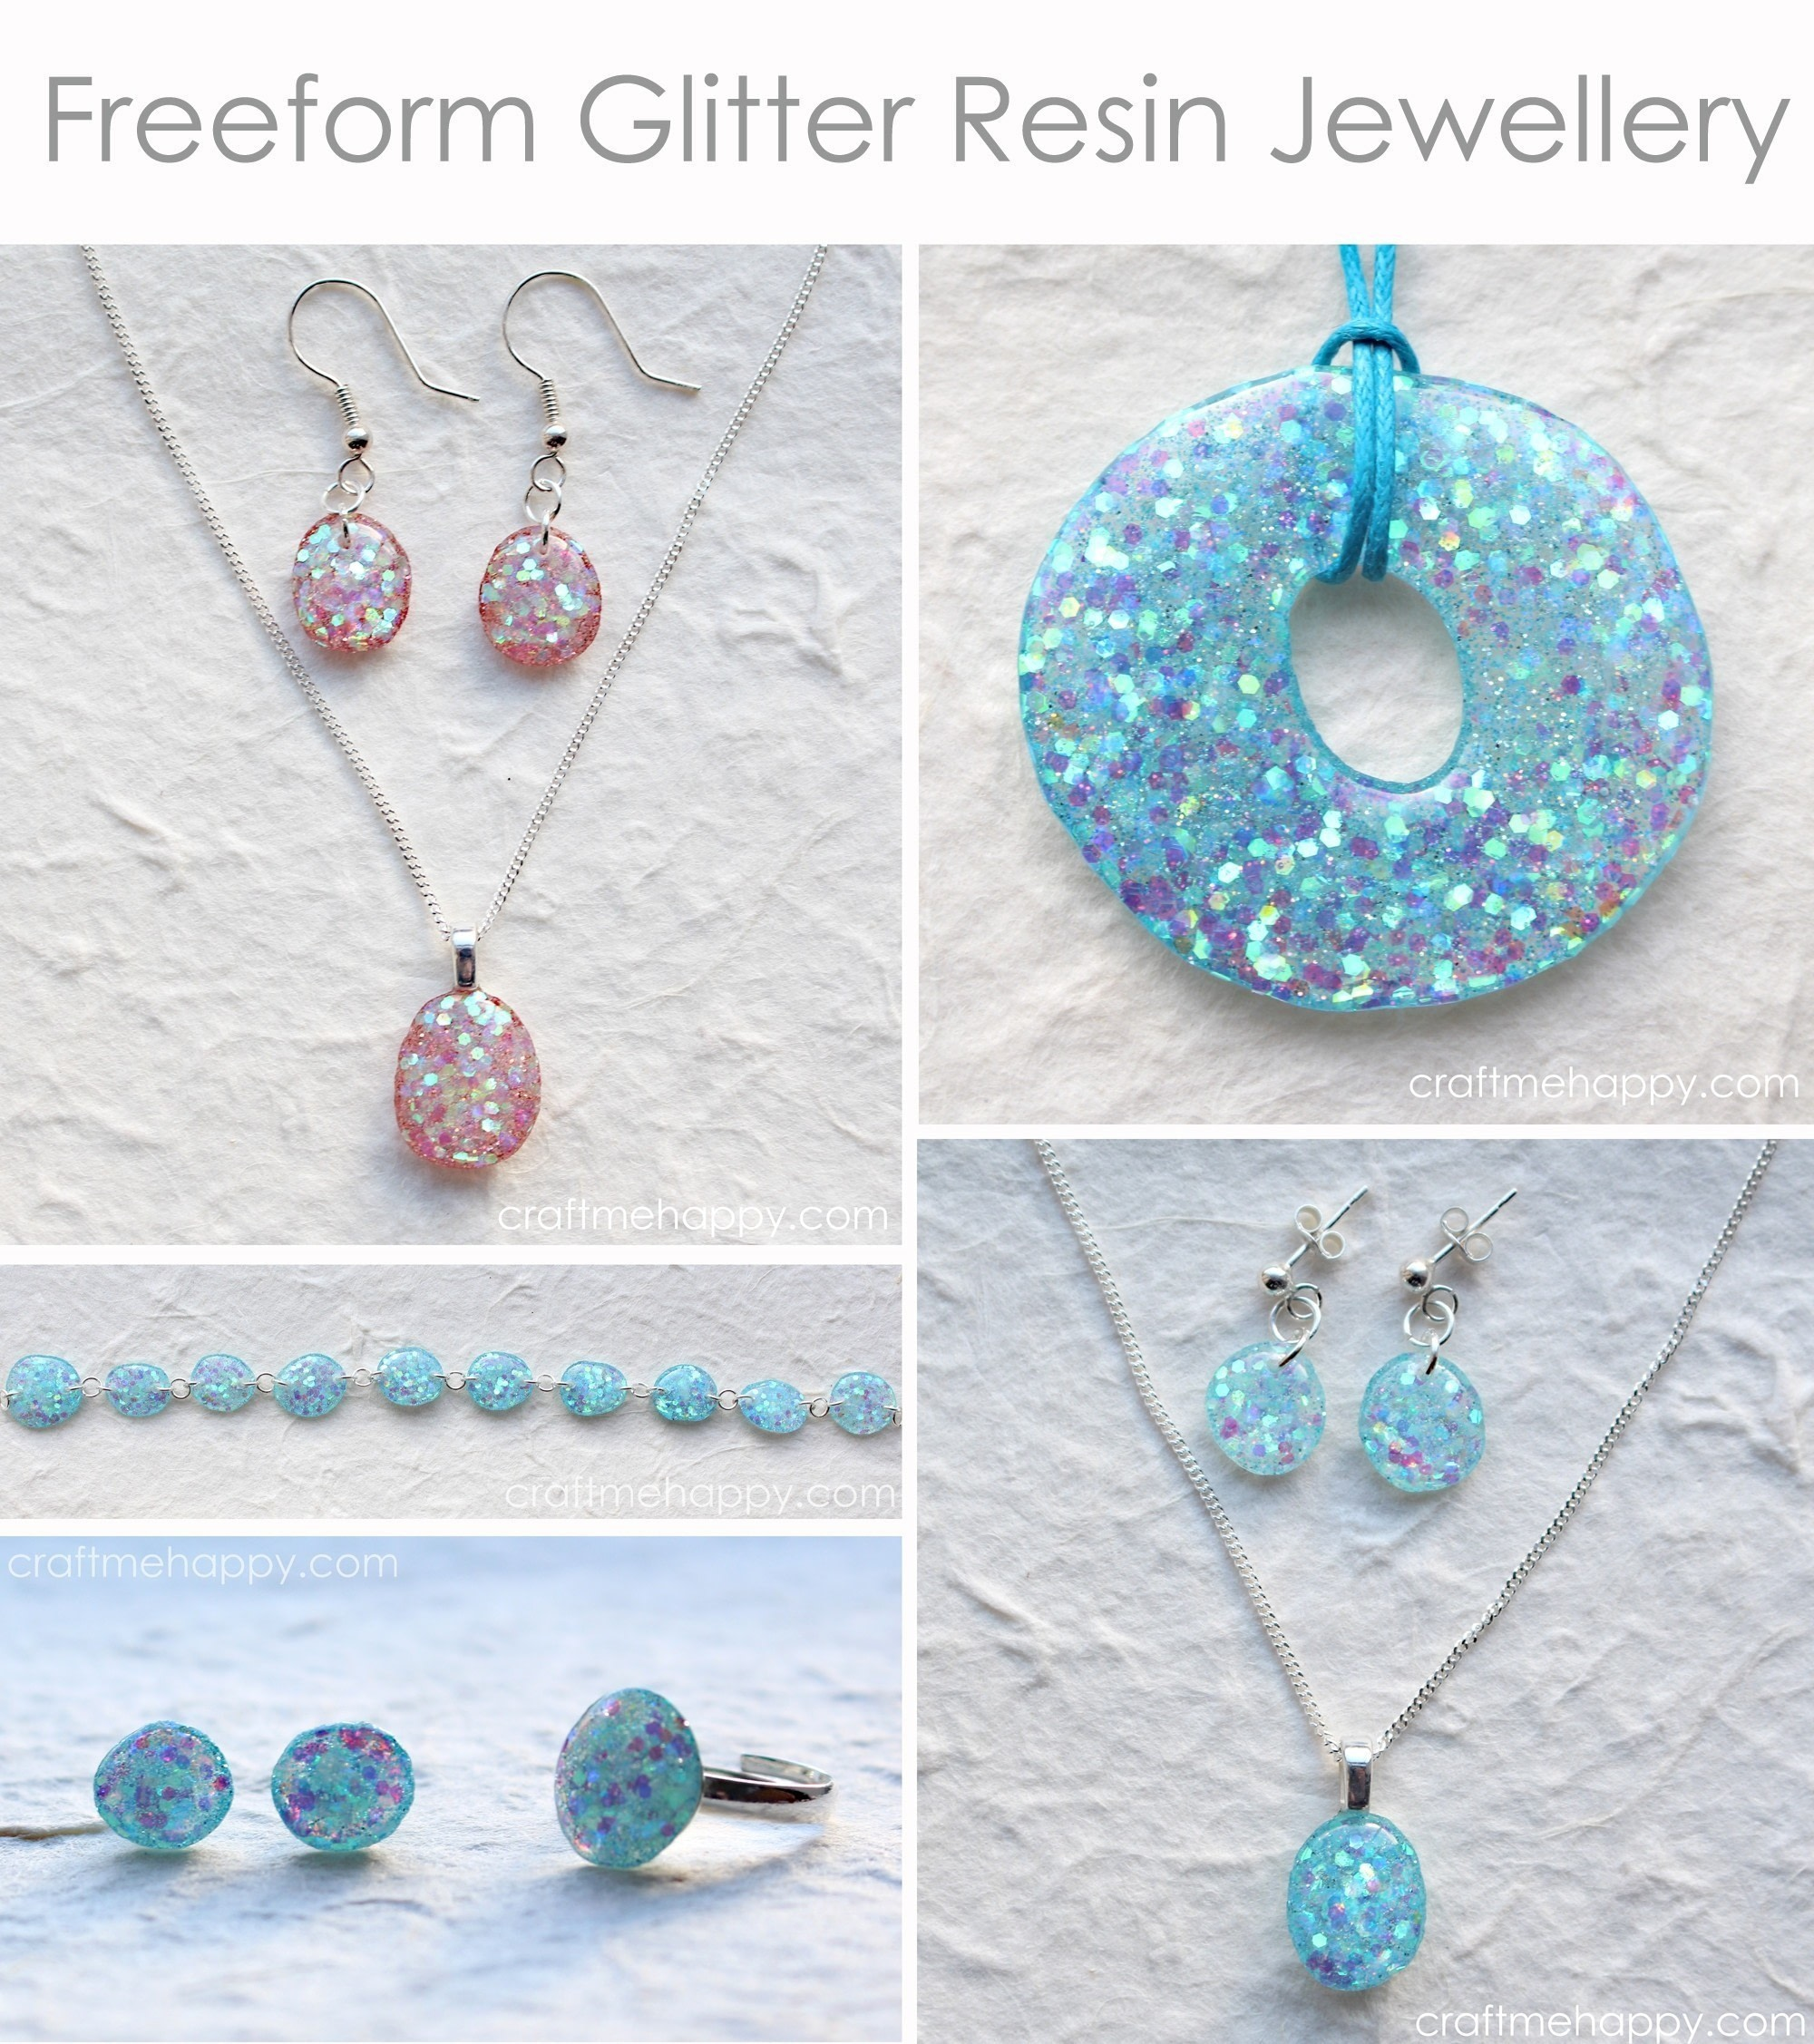 15 resin jewelry diys to try your hand at diy glitter resin jewelry solutioingenieria Gallery